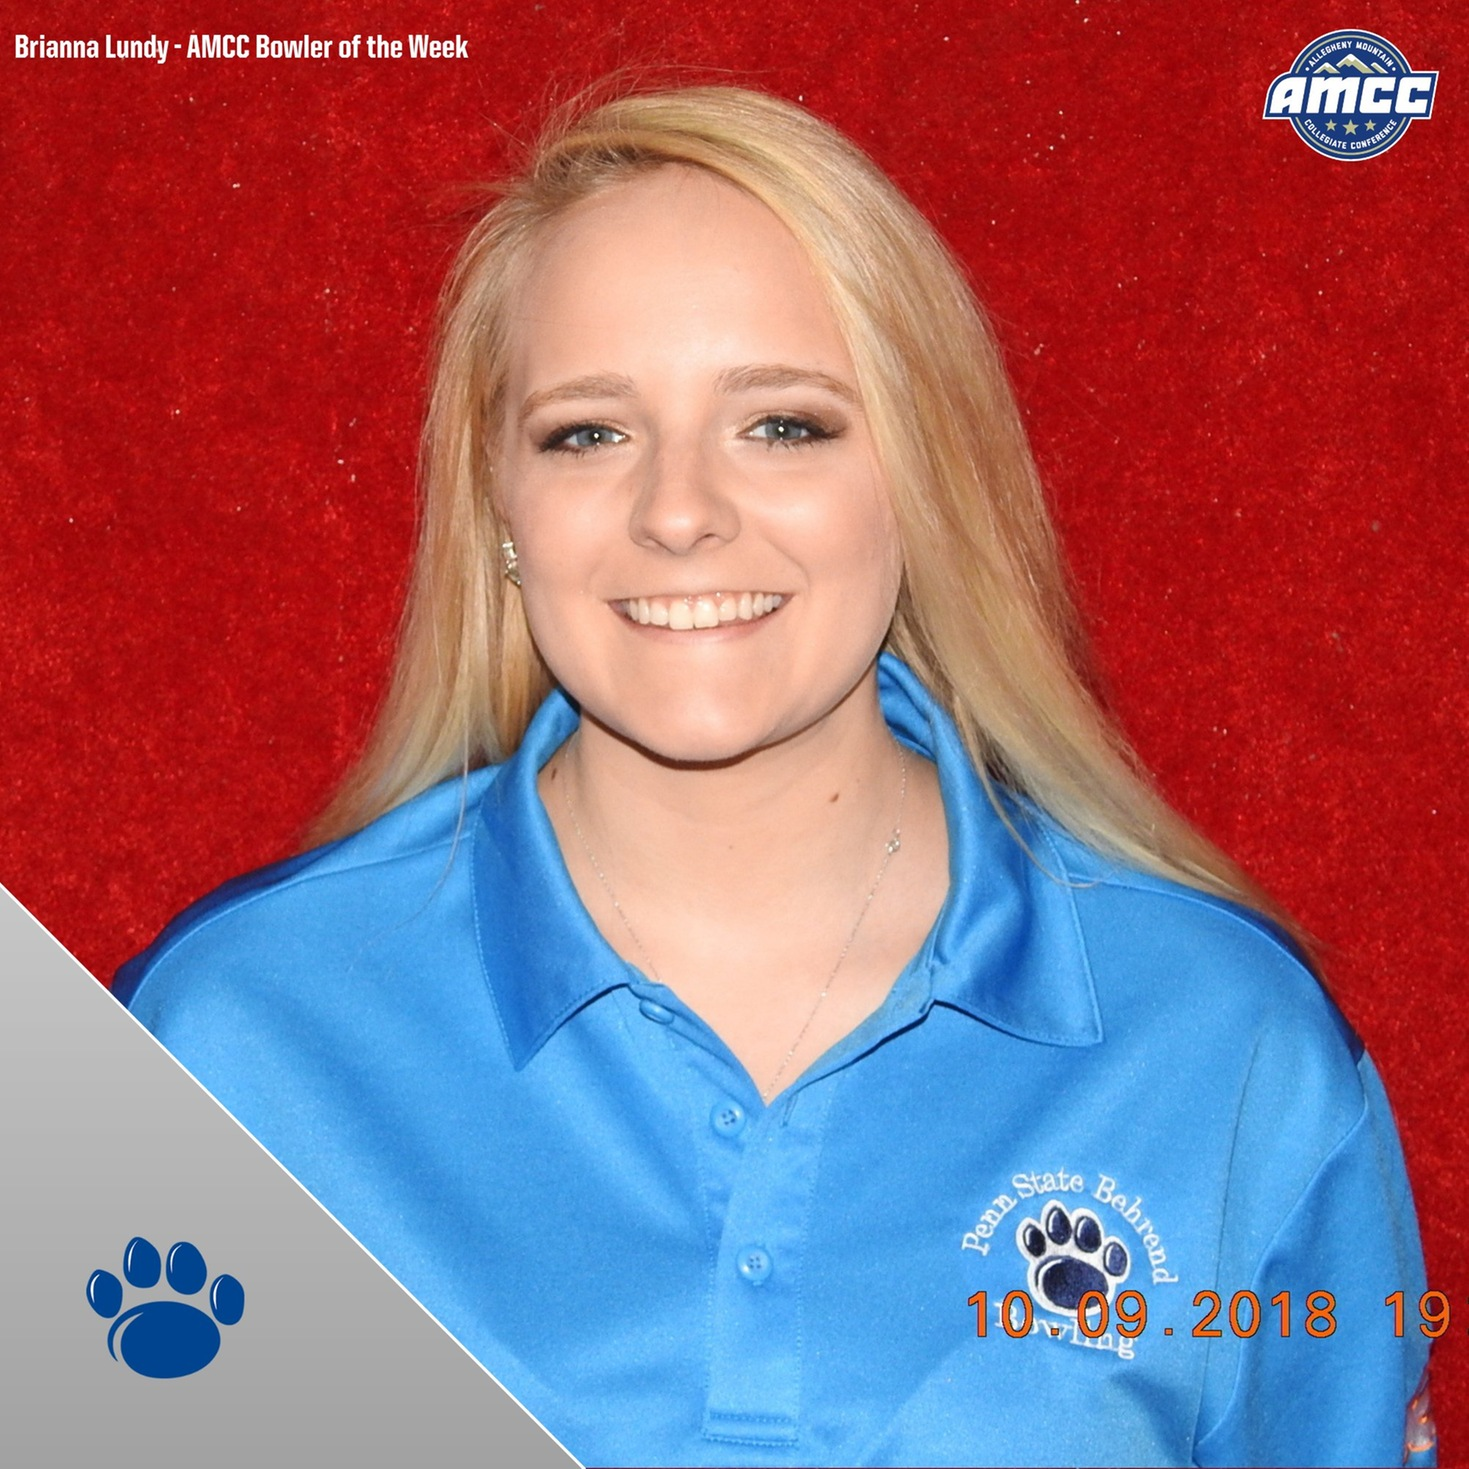 Lundy Named AMCC Bowler of the Week